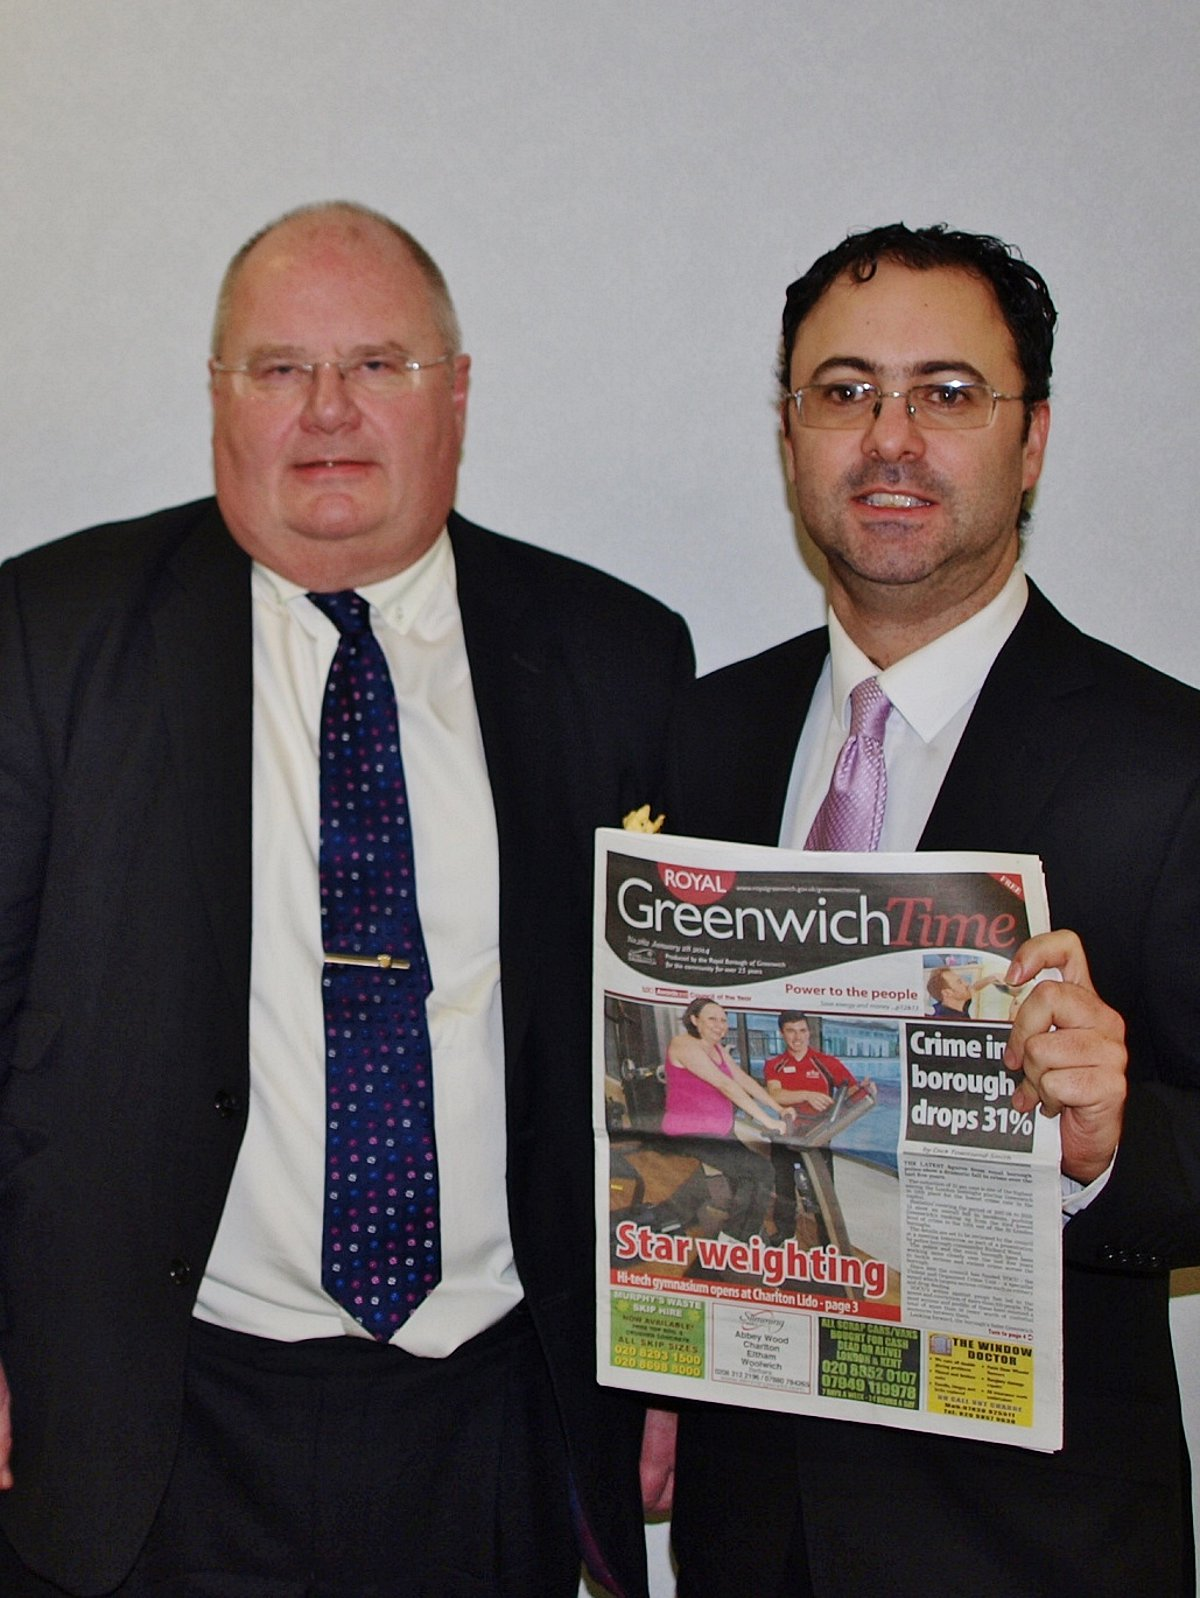 Greenwich Council set to break law and 'waste taxpayers' money' with council paper Greenwich Time